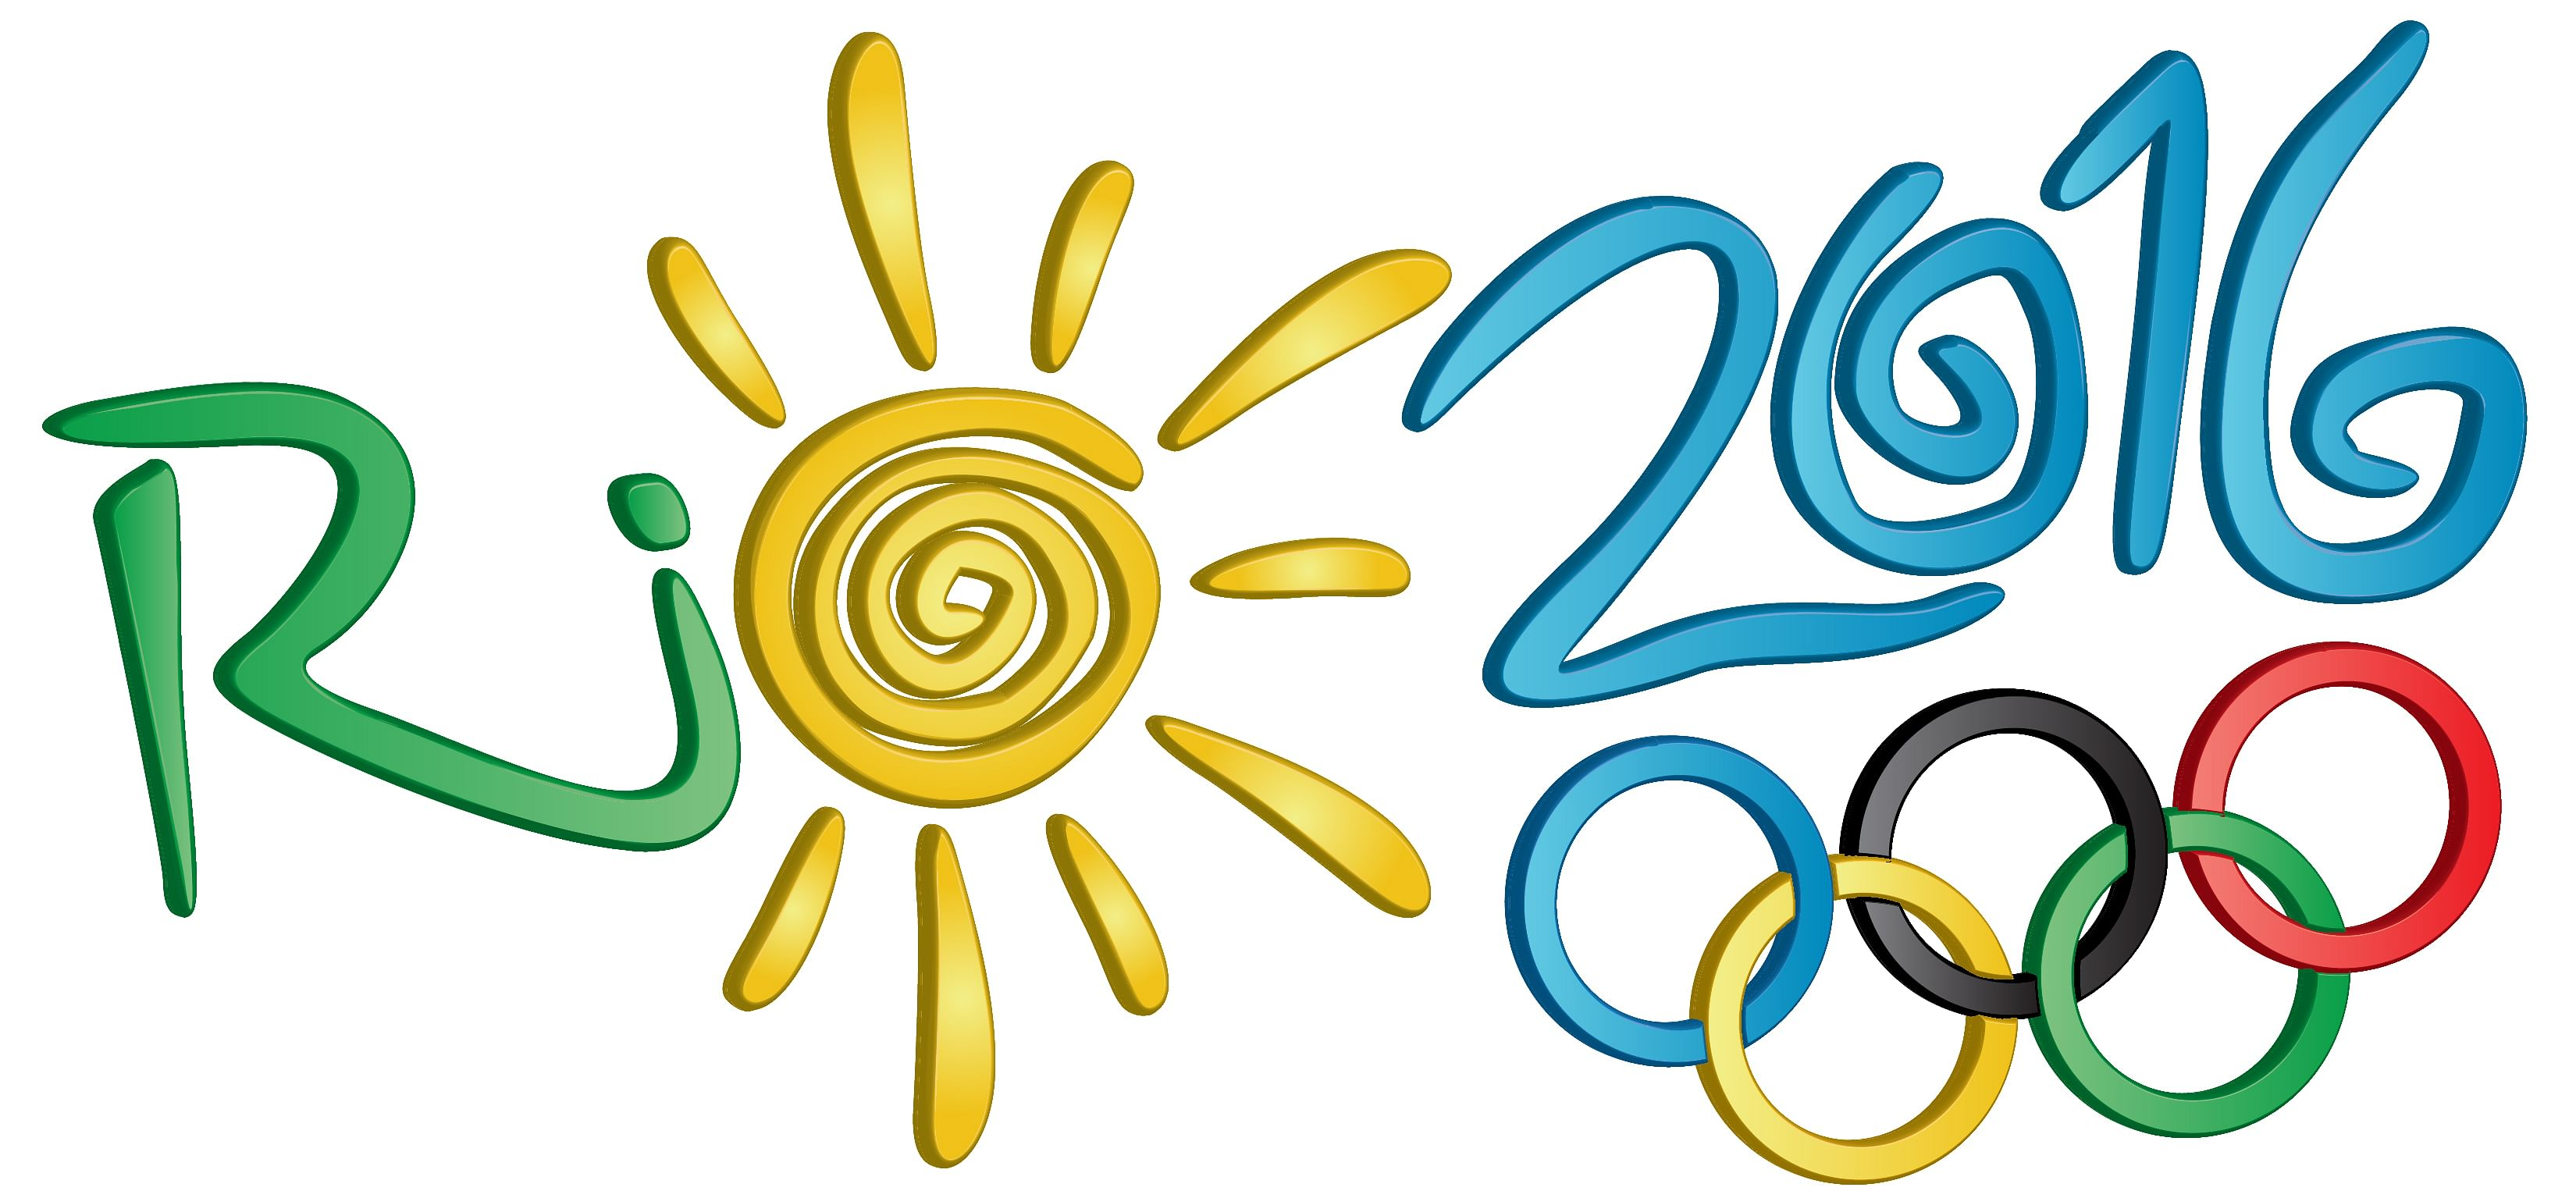 Rio 2016 extends ticketing deadline